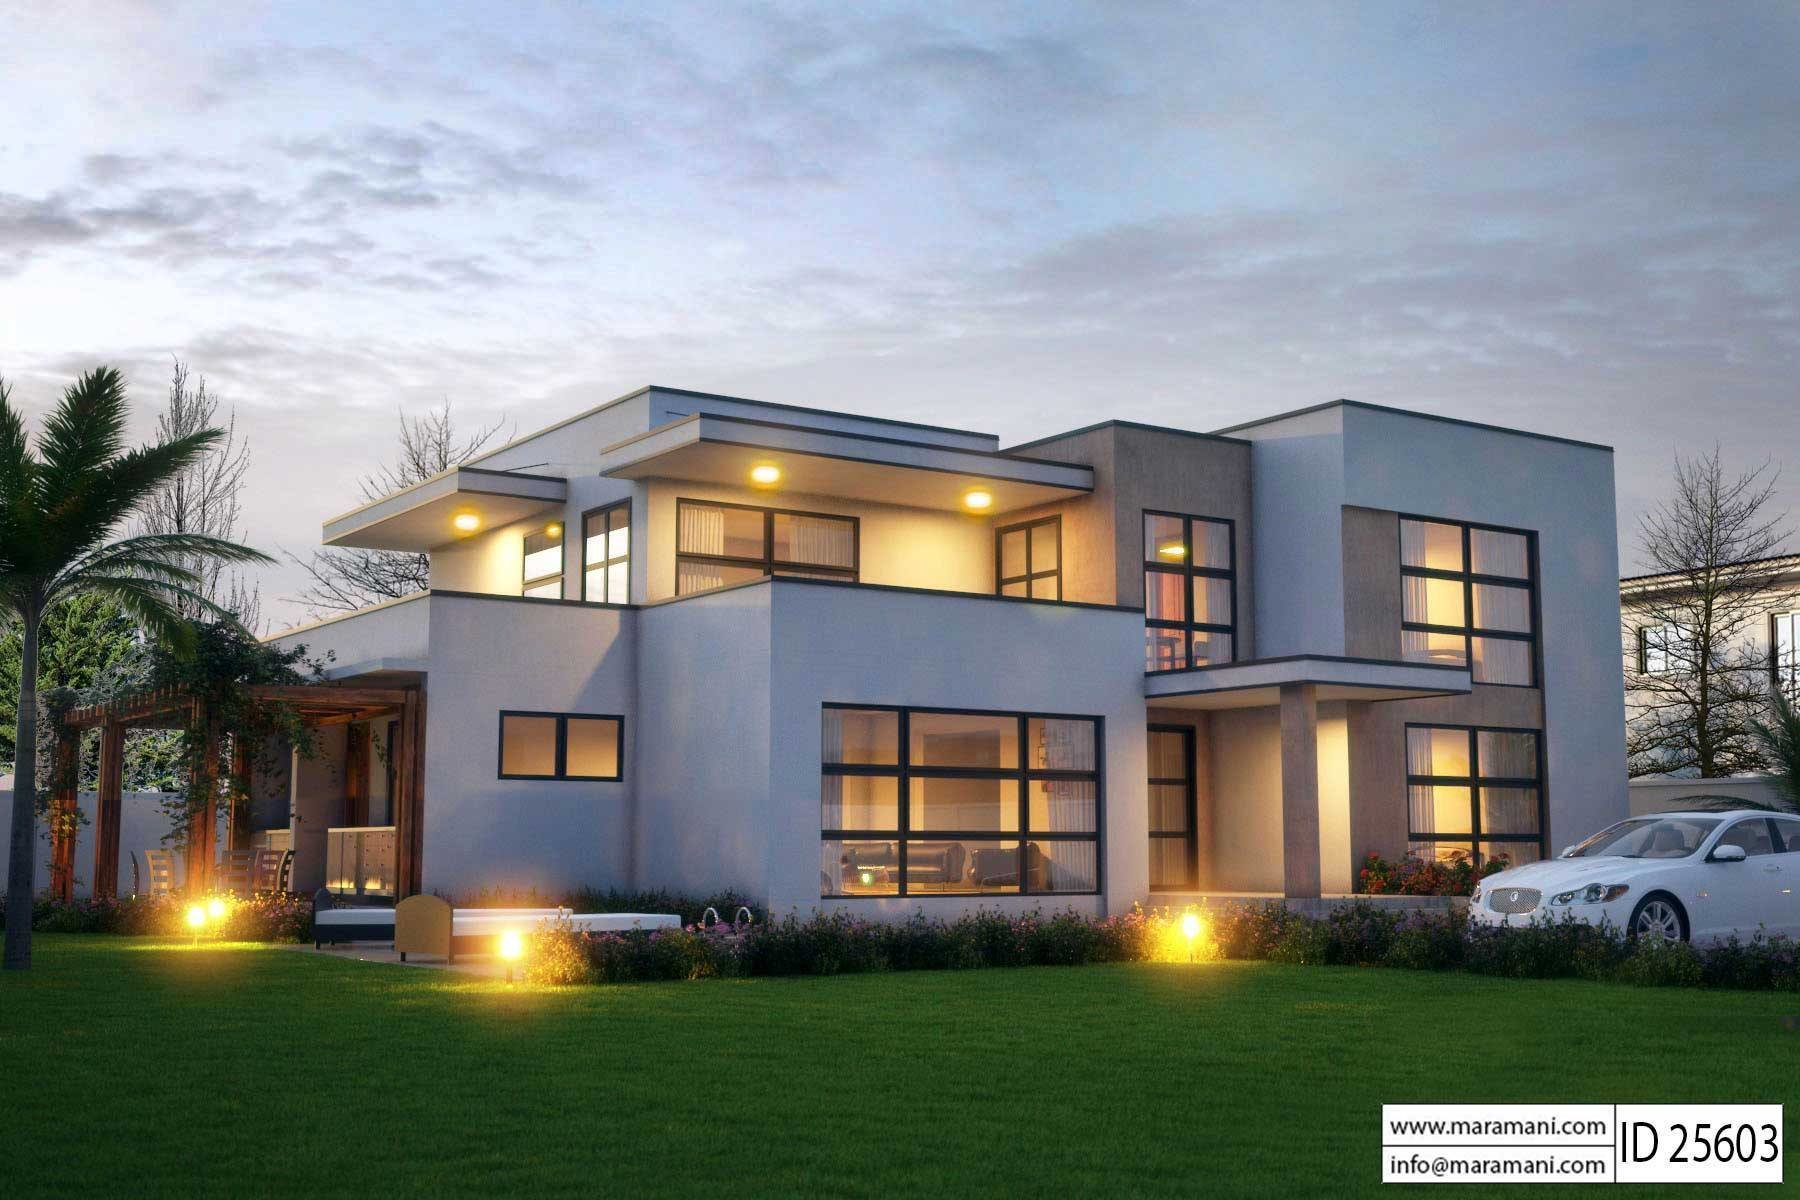 Best Modern 5 Bedroom House Design Id 25603 Floor Plans By With Pictures